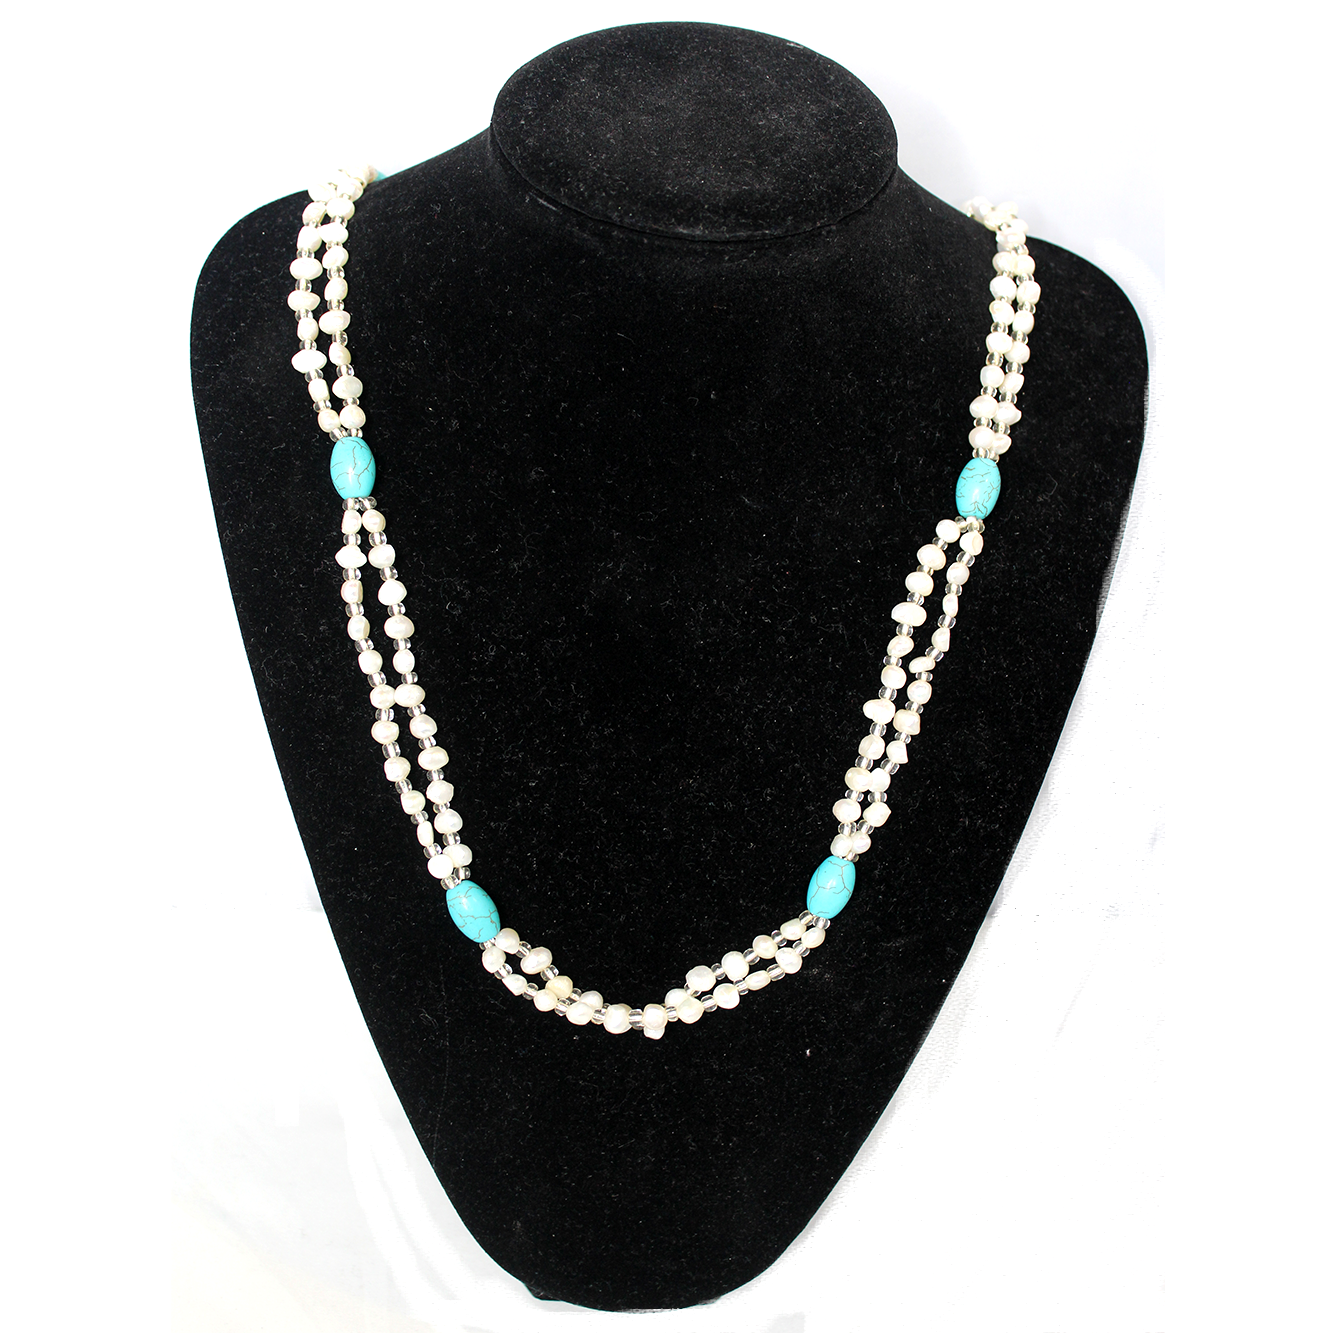 2 Strand Fresh Water Pearl Necklace with Blue Turquoise, 6 & 8mm, 31 inch